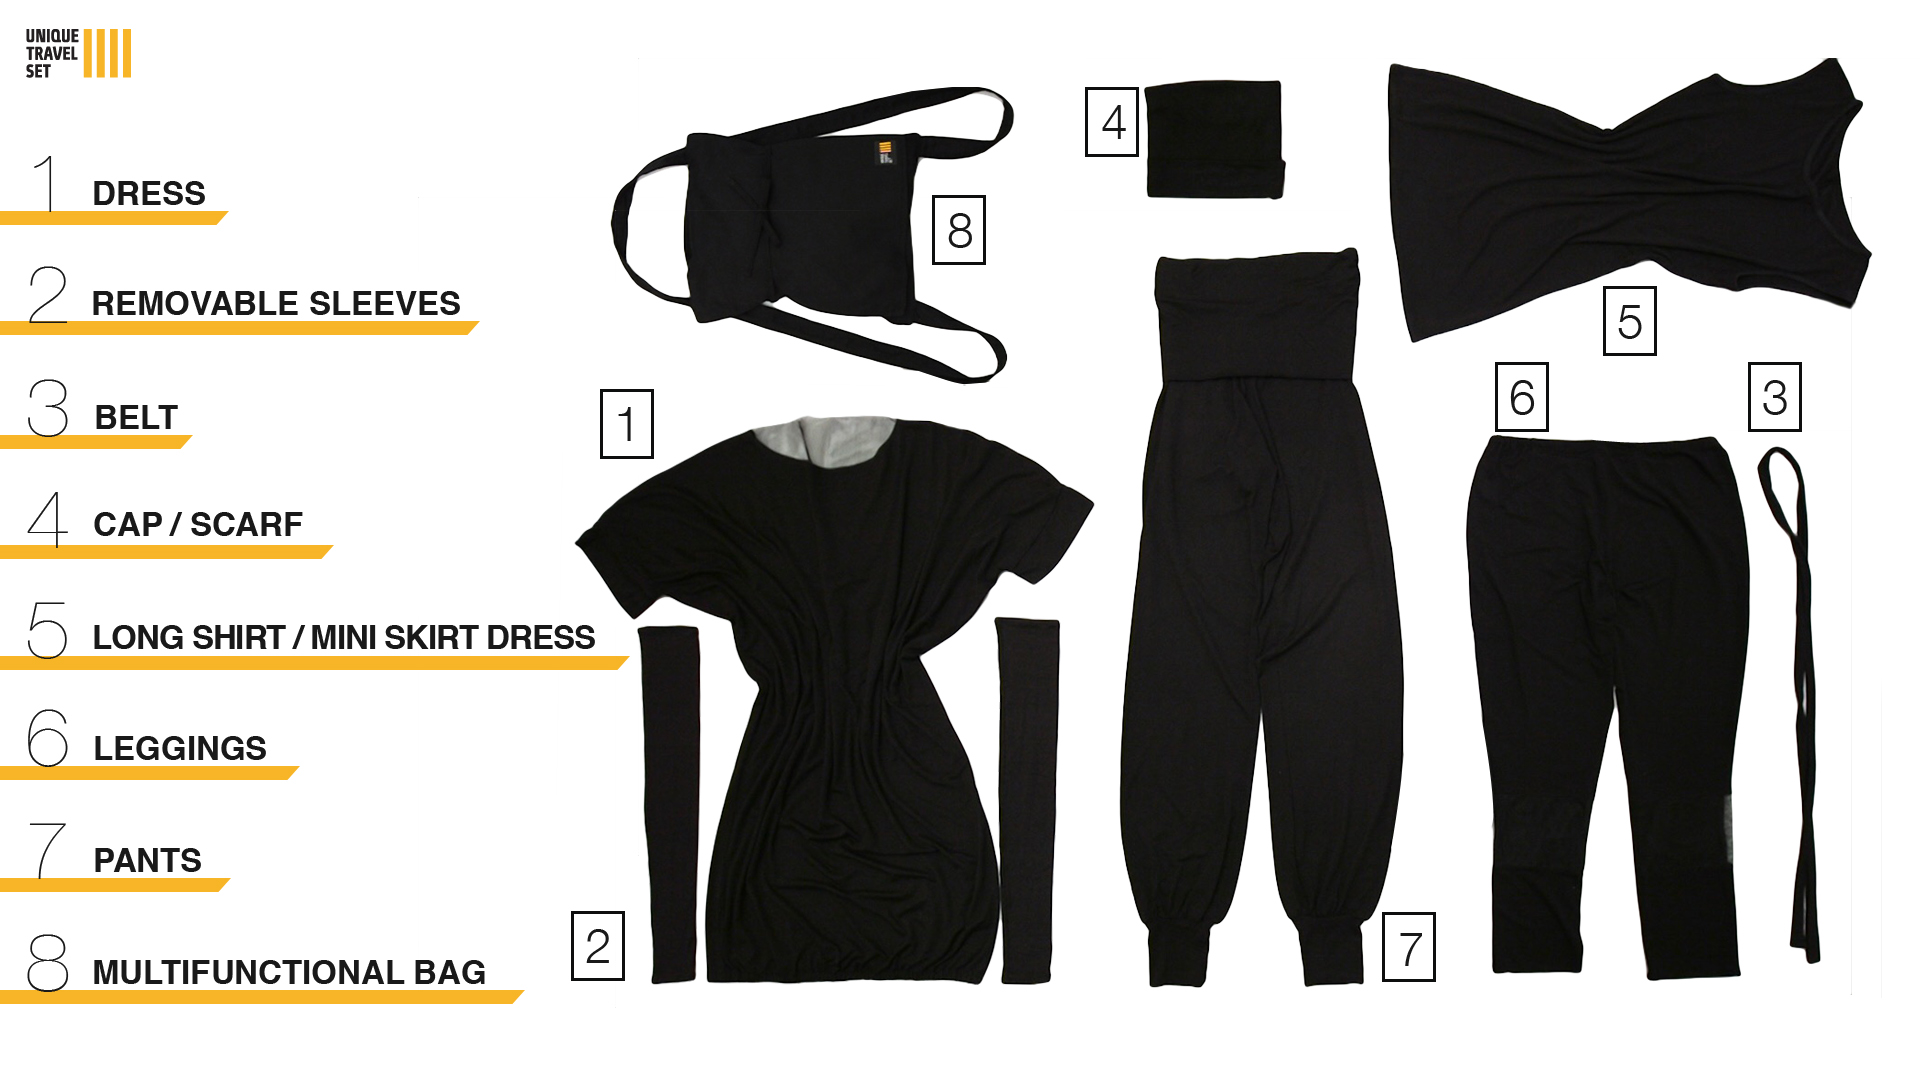 af70ff95a2b2 Can this Kickstarter clothing company solve our travel packing problems